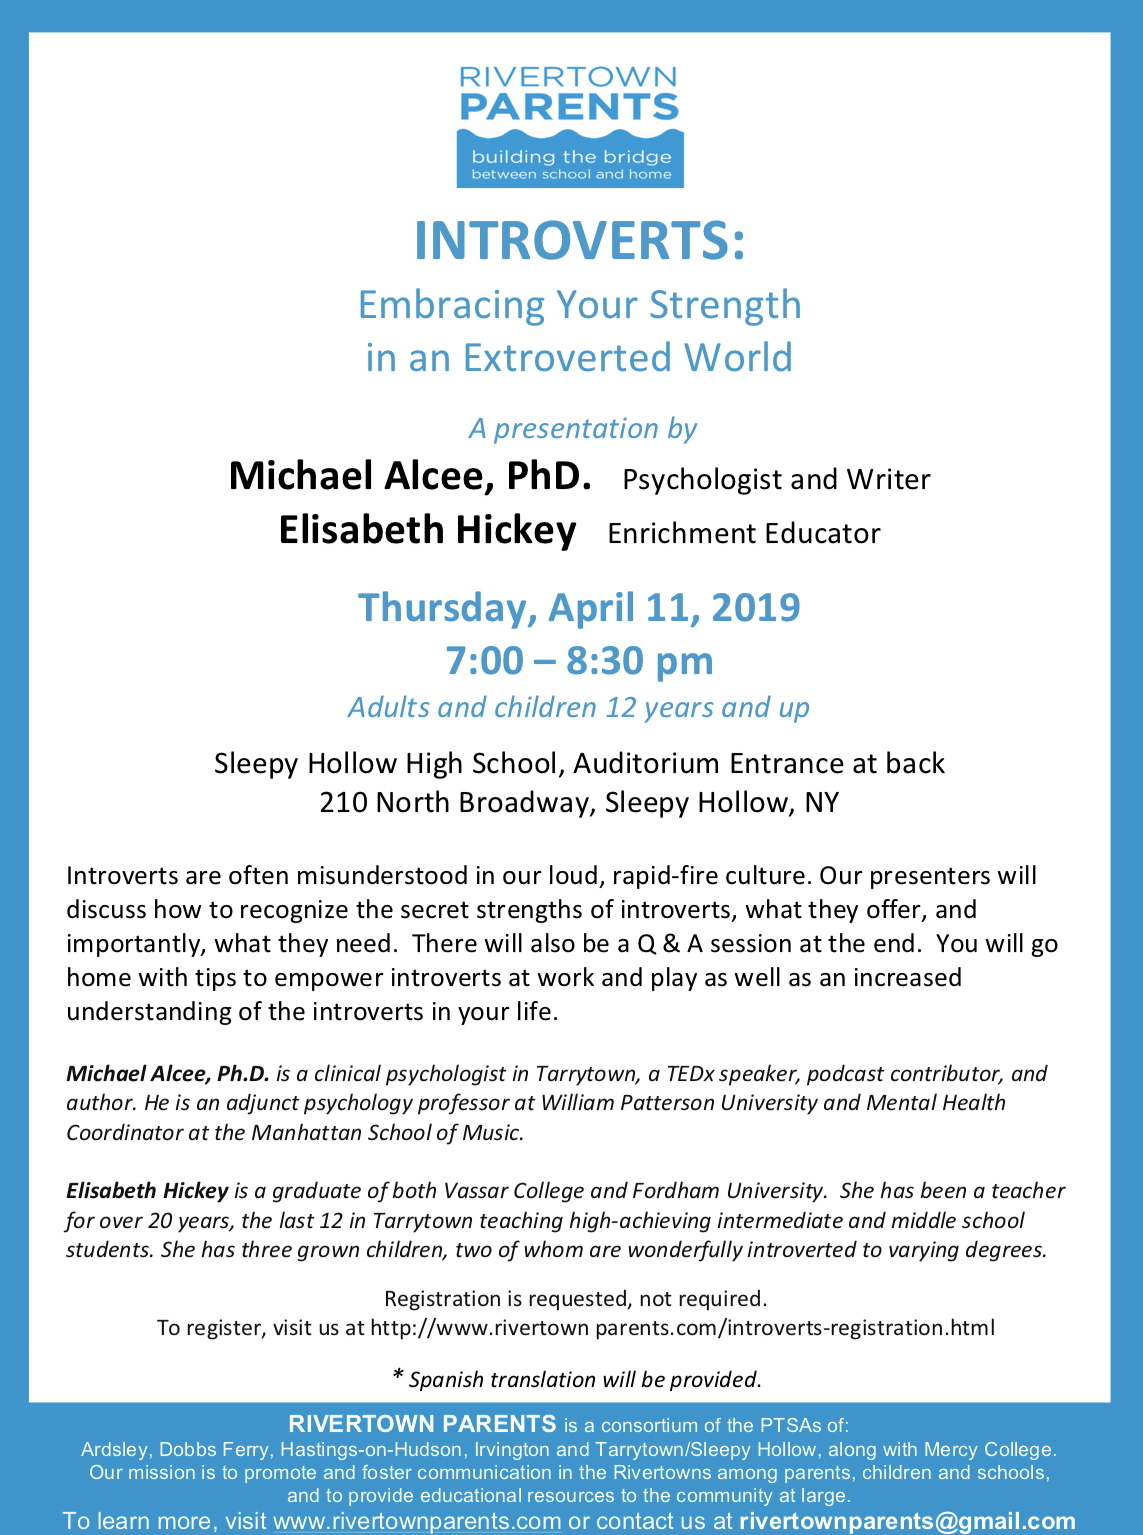 Introverts: Embracing Your Strength in an Extroverted World